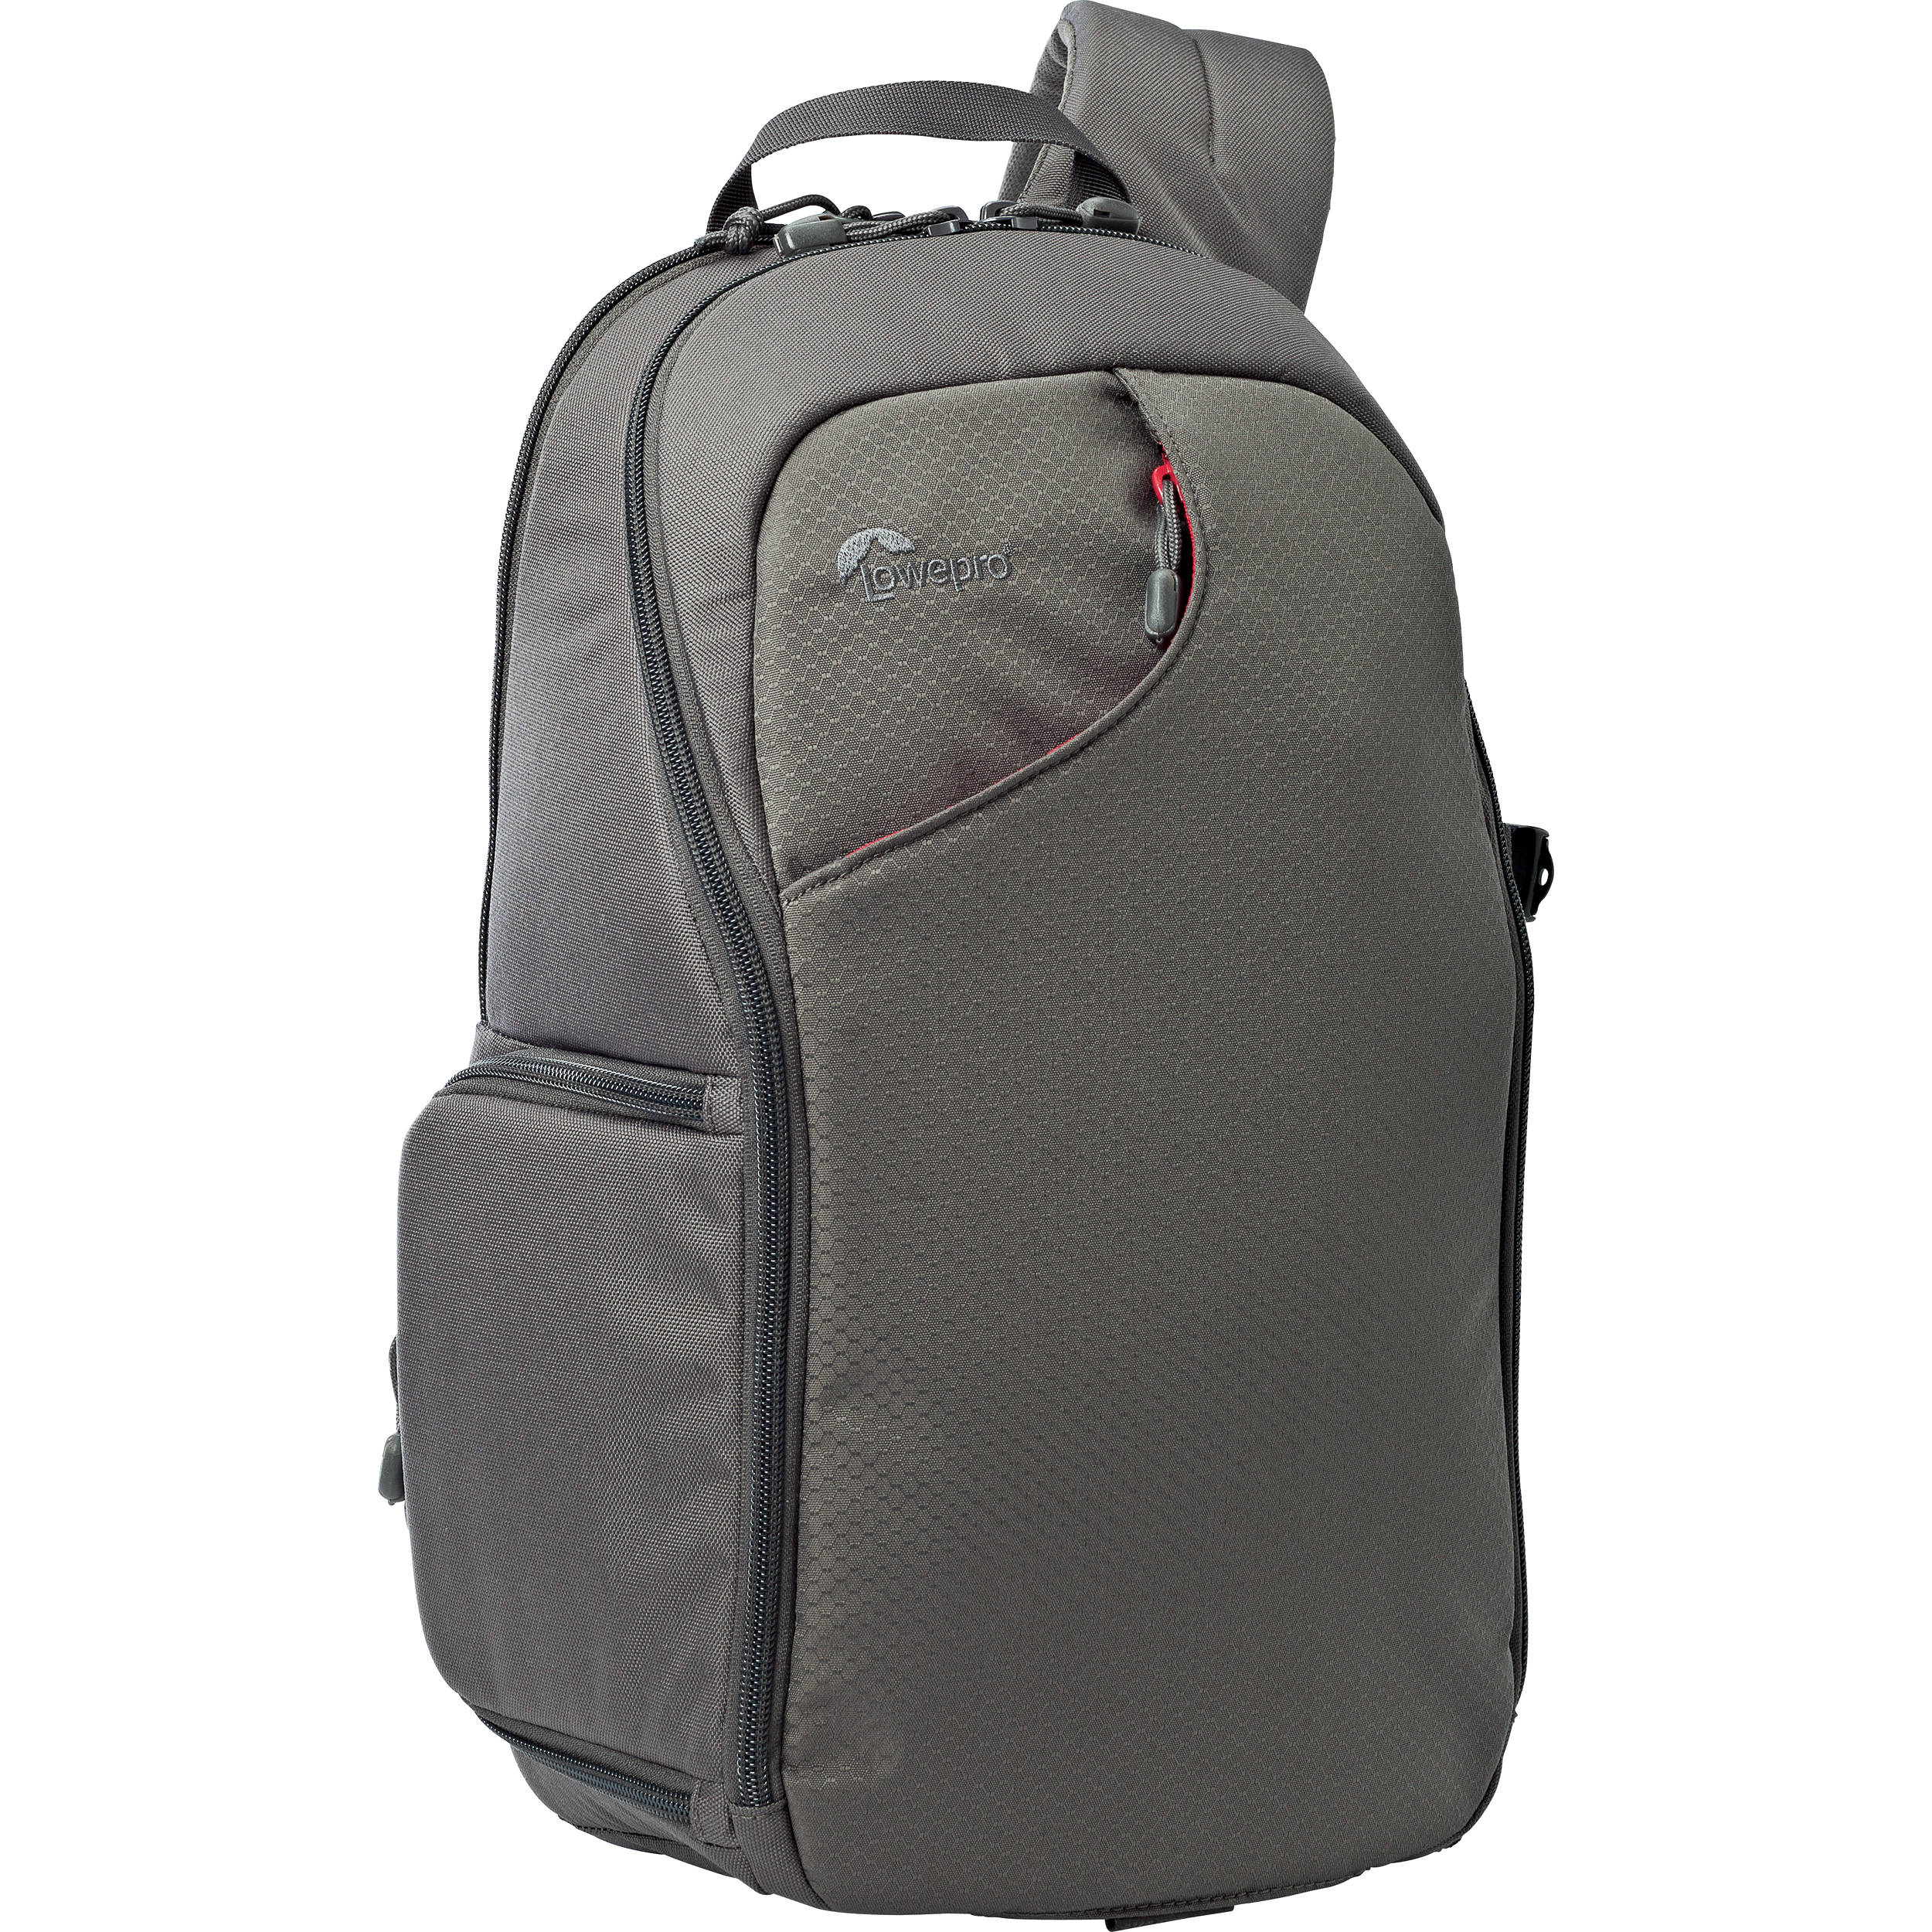 Lowepro Transit Sling 250 AW (Slate Grey) LP36576 B&H Photo